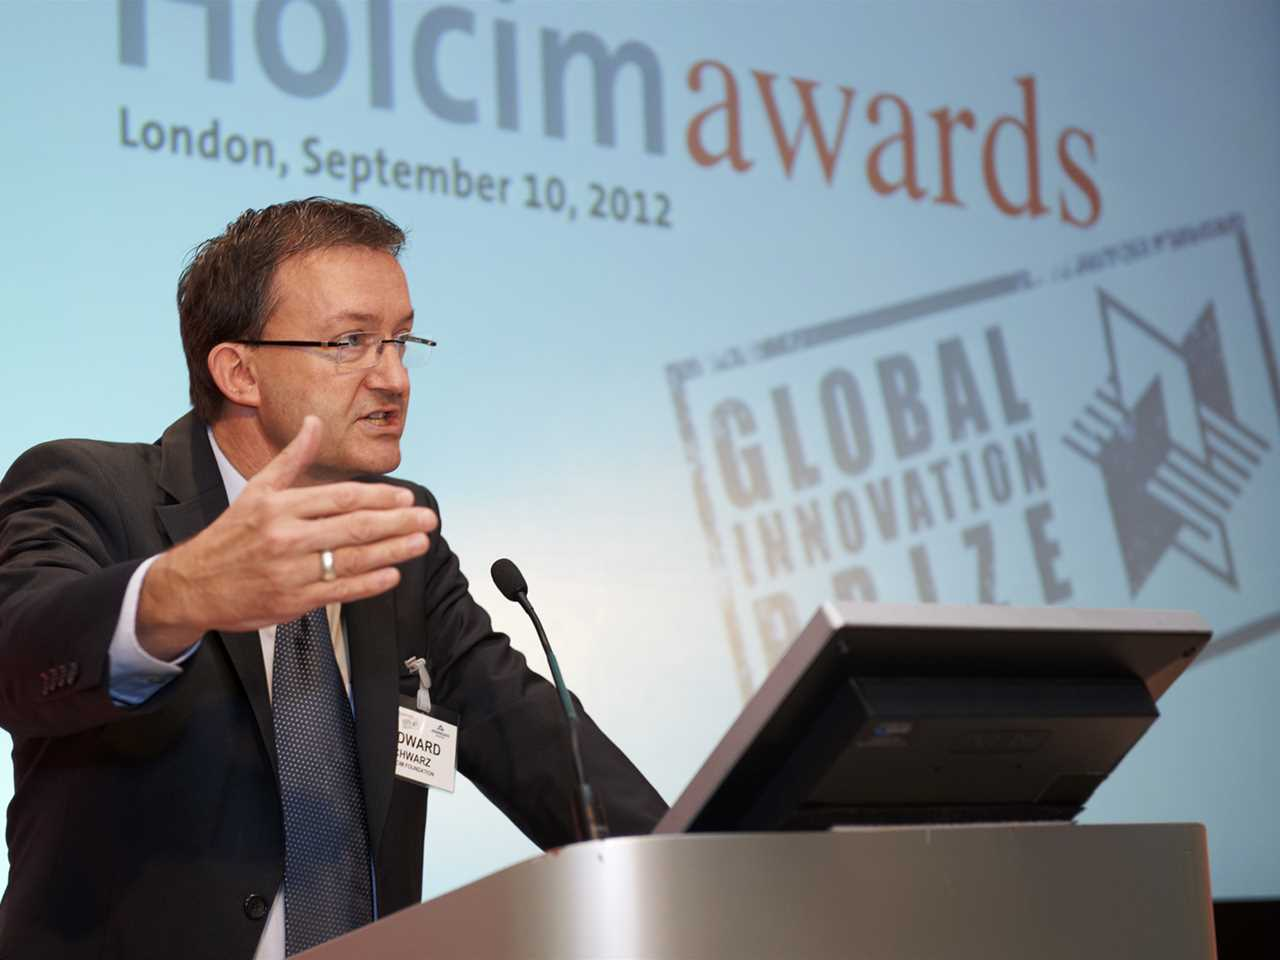 Edward Schwarz was moderator of the Holcim Awards Innovation 3rd prize handover event held …